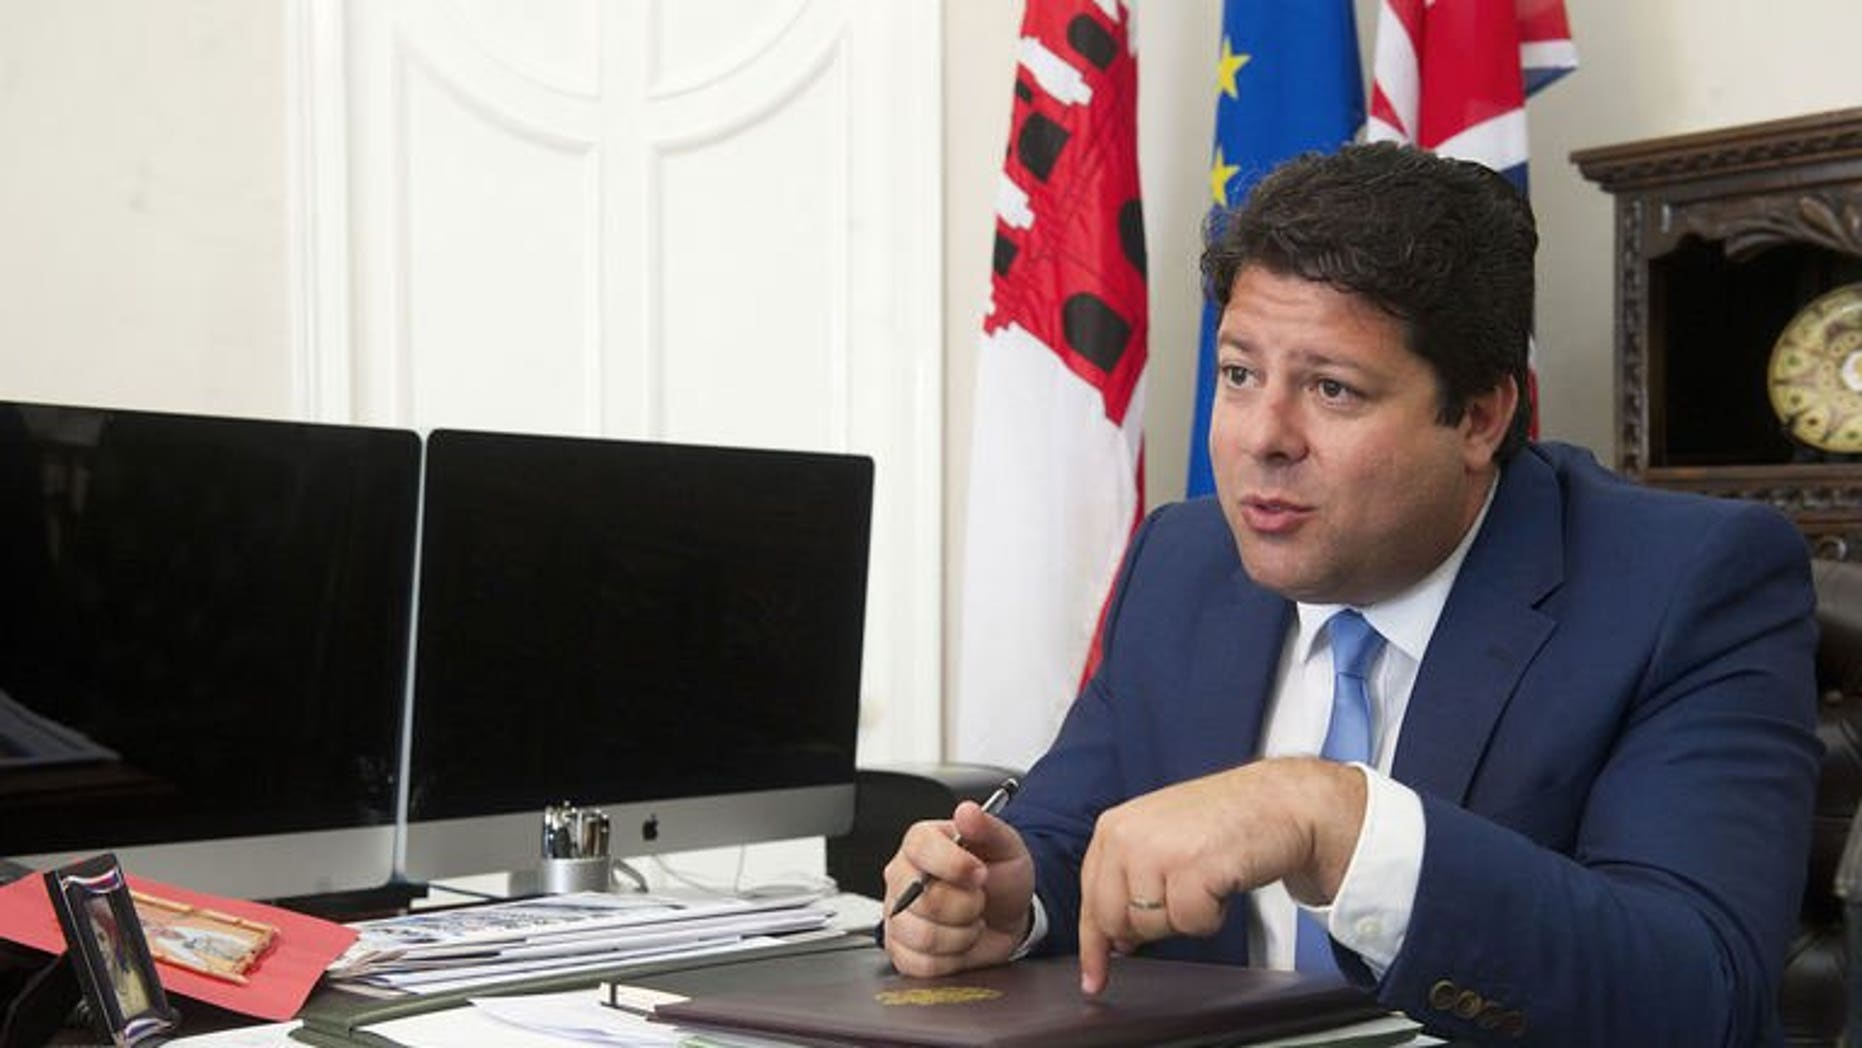 Gibraltar's Chief Minister Fabian Picardo speaks during an interview with AFP in his Convent Place office, Gibraltar, on August 14, 2013.